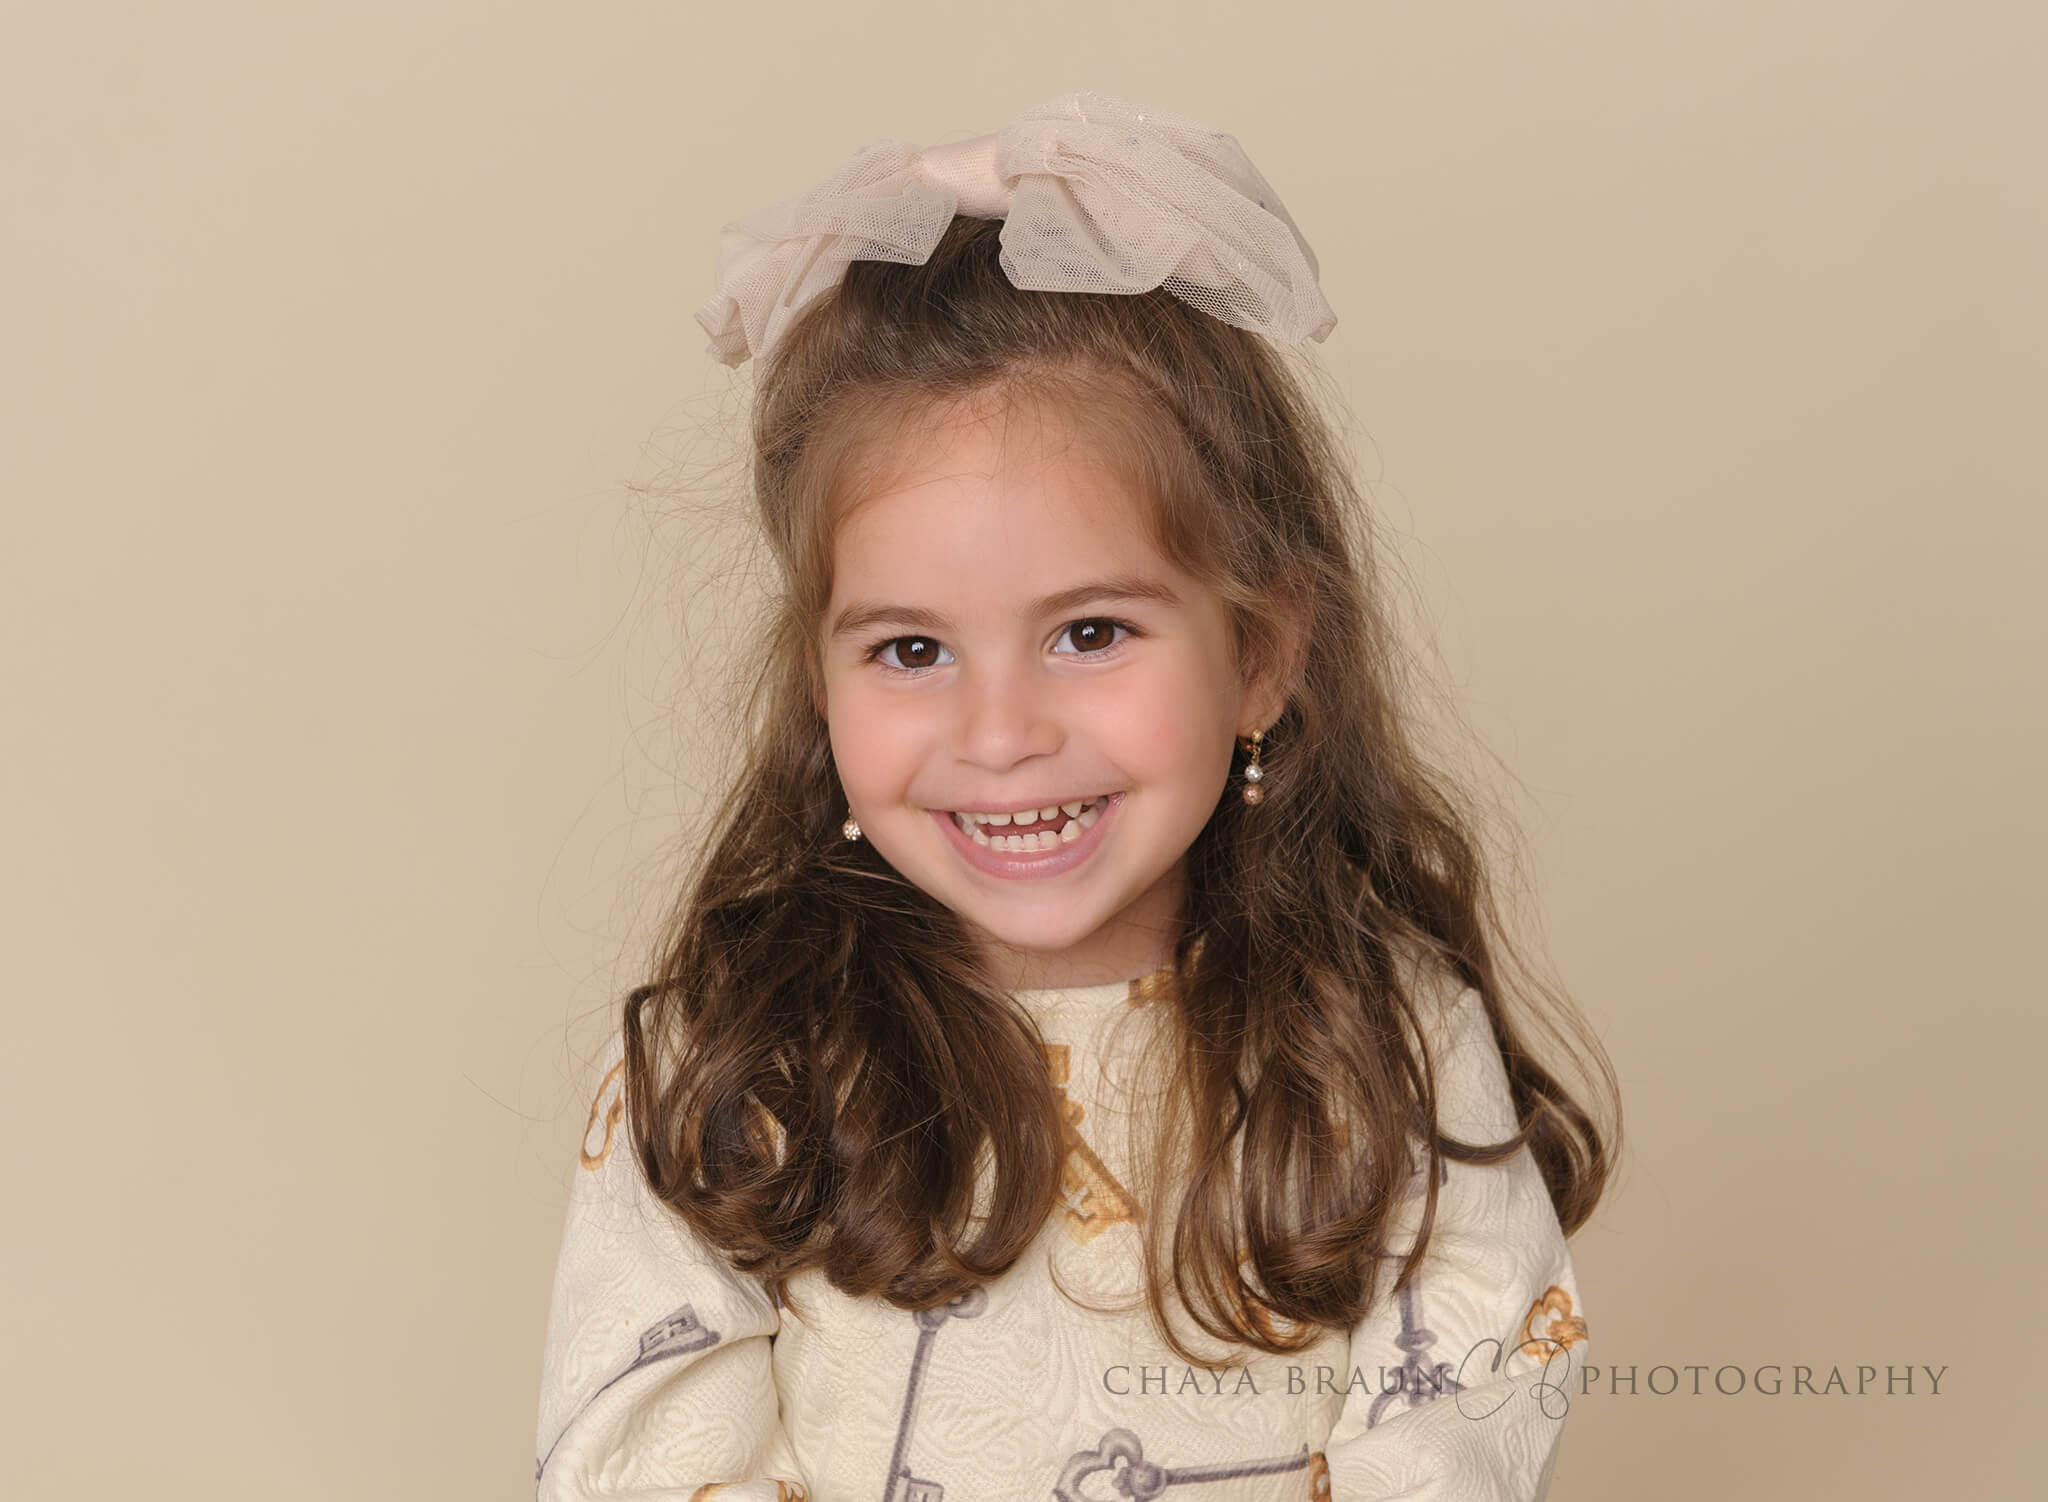 Baltimore studio photographer